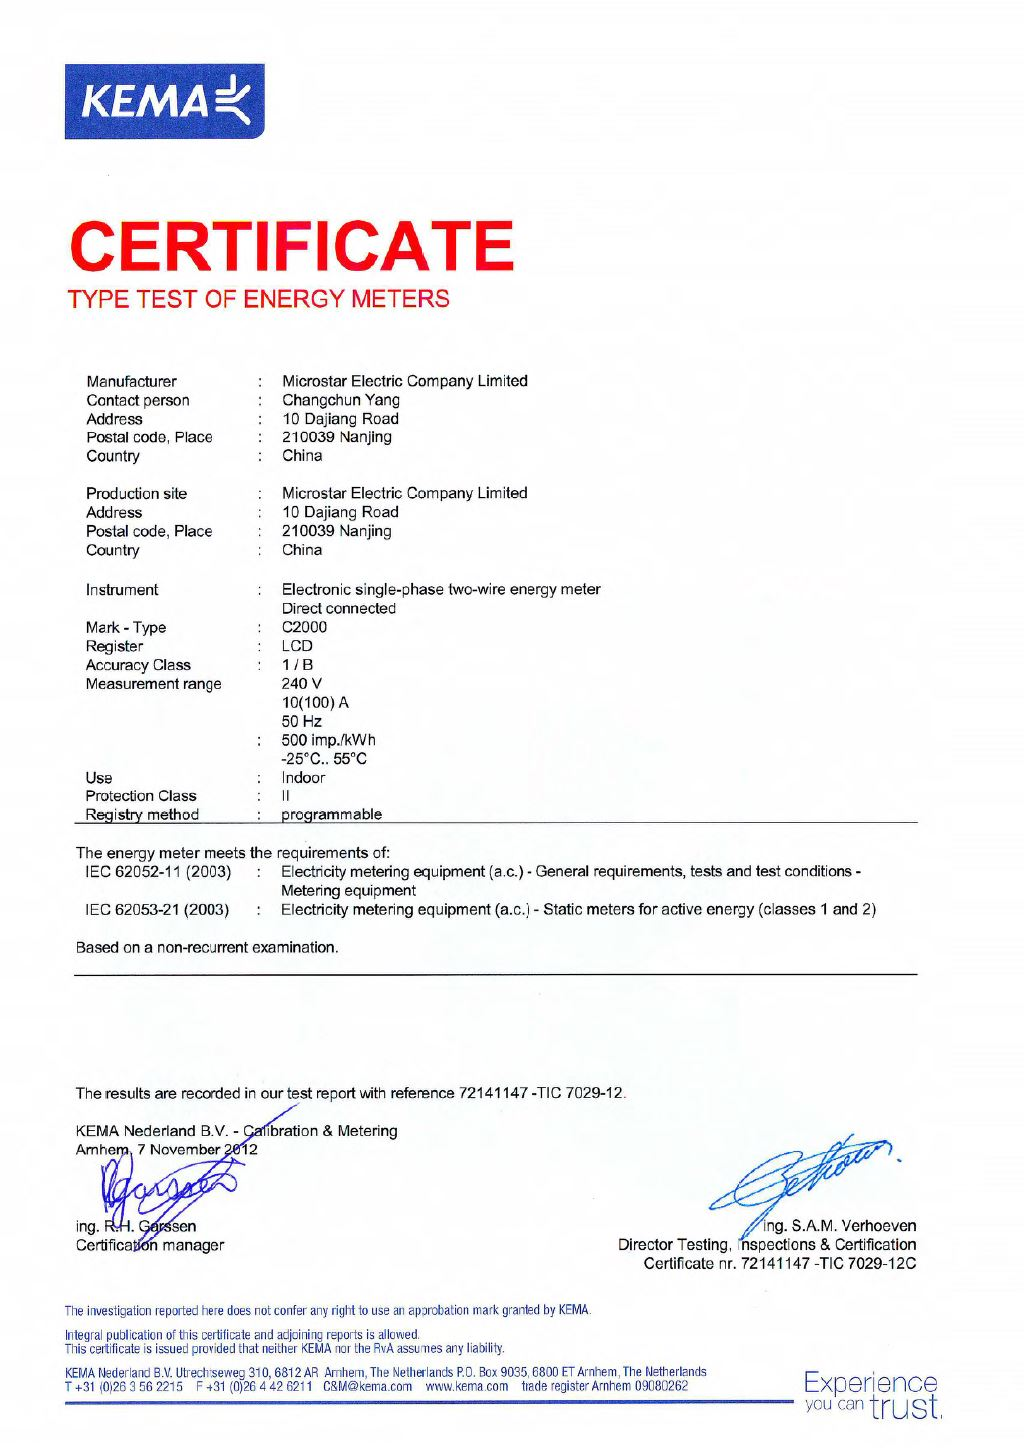 C2000 IEC Type Test Certificate by KEMA